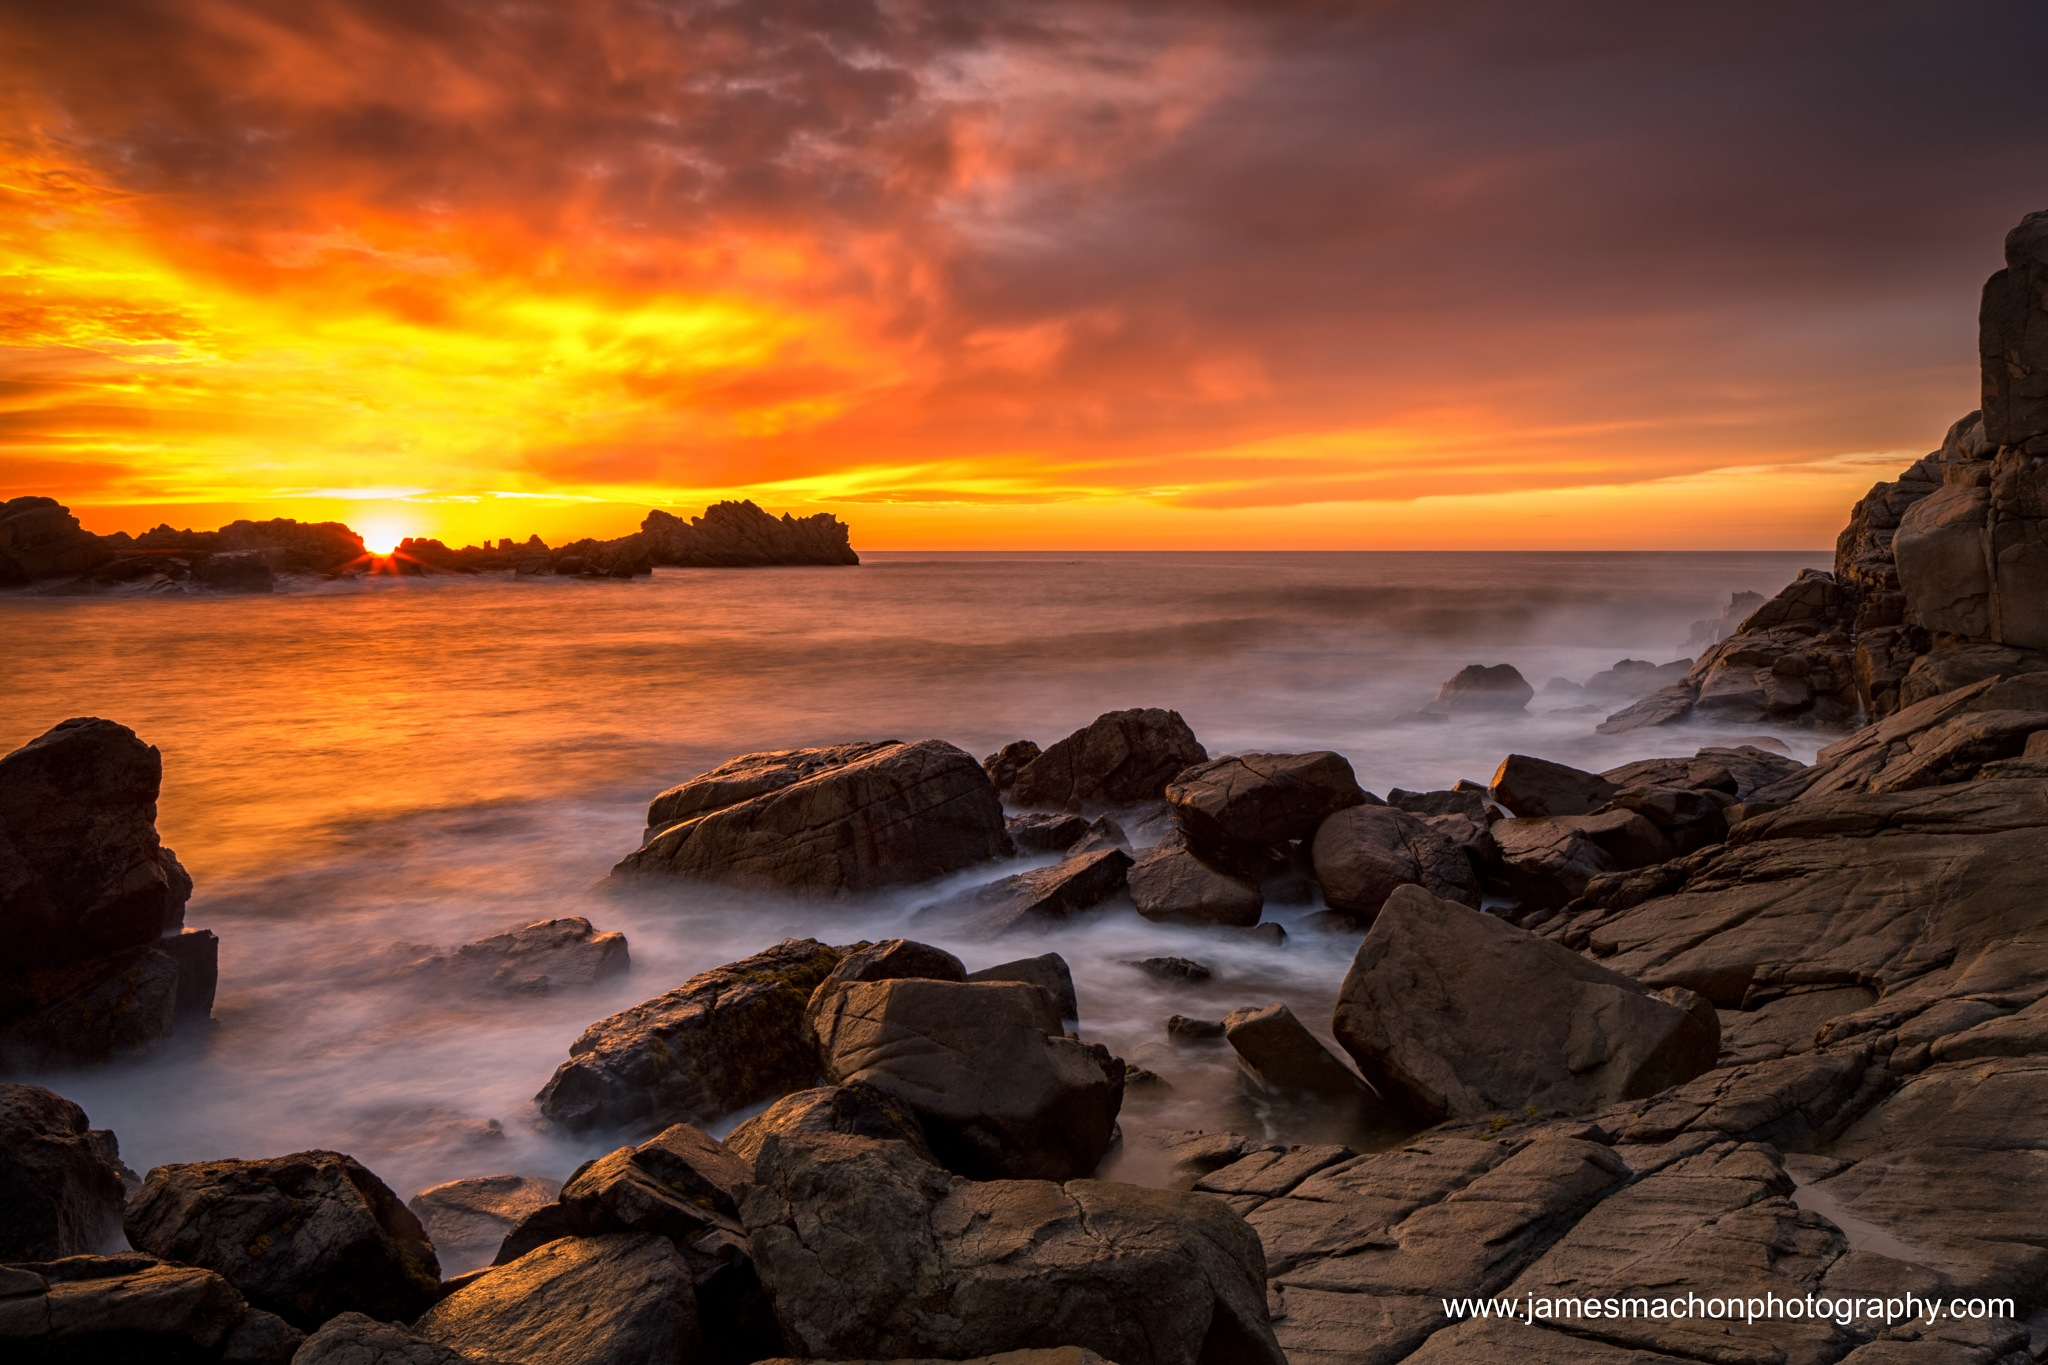 Sunset at Port Soif by James Machon Photography